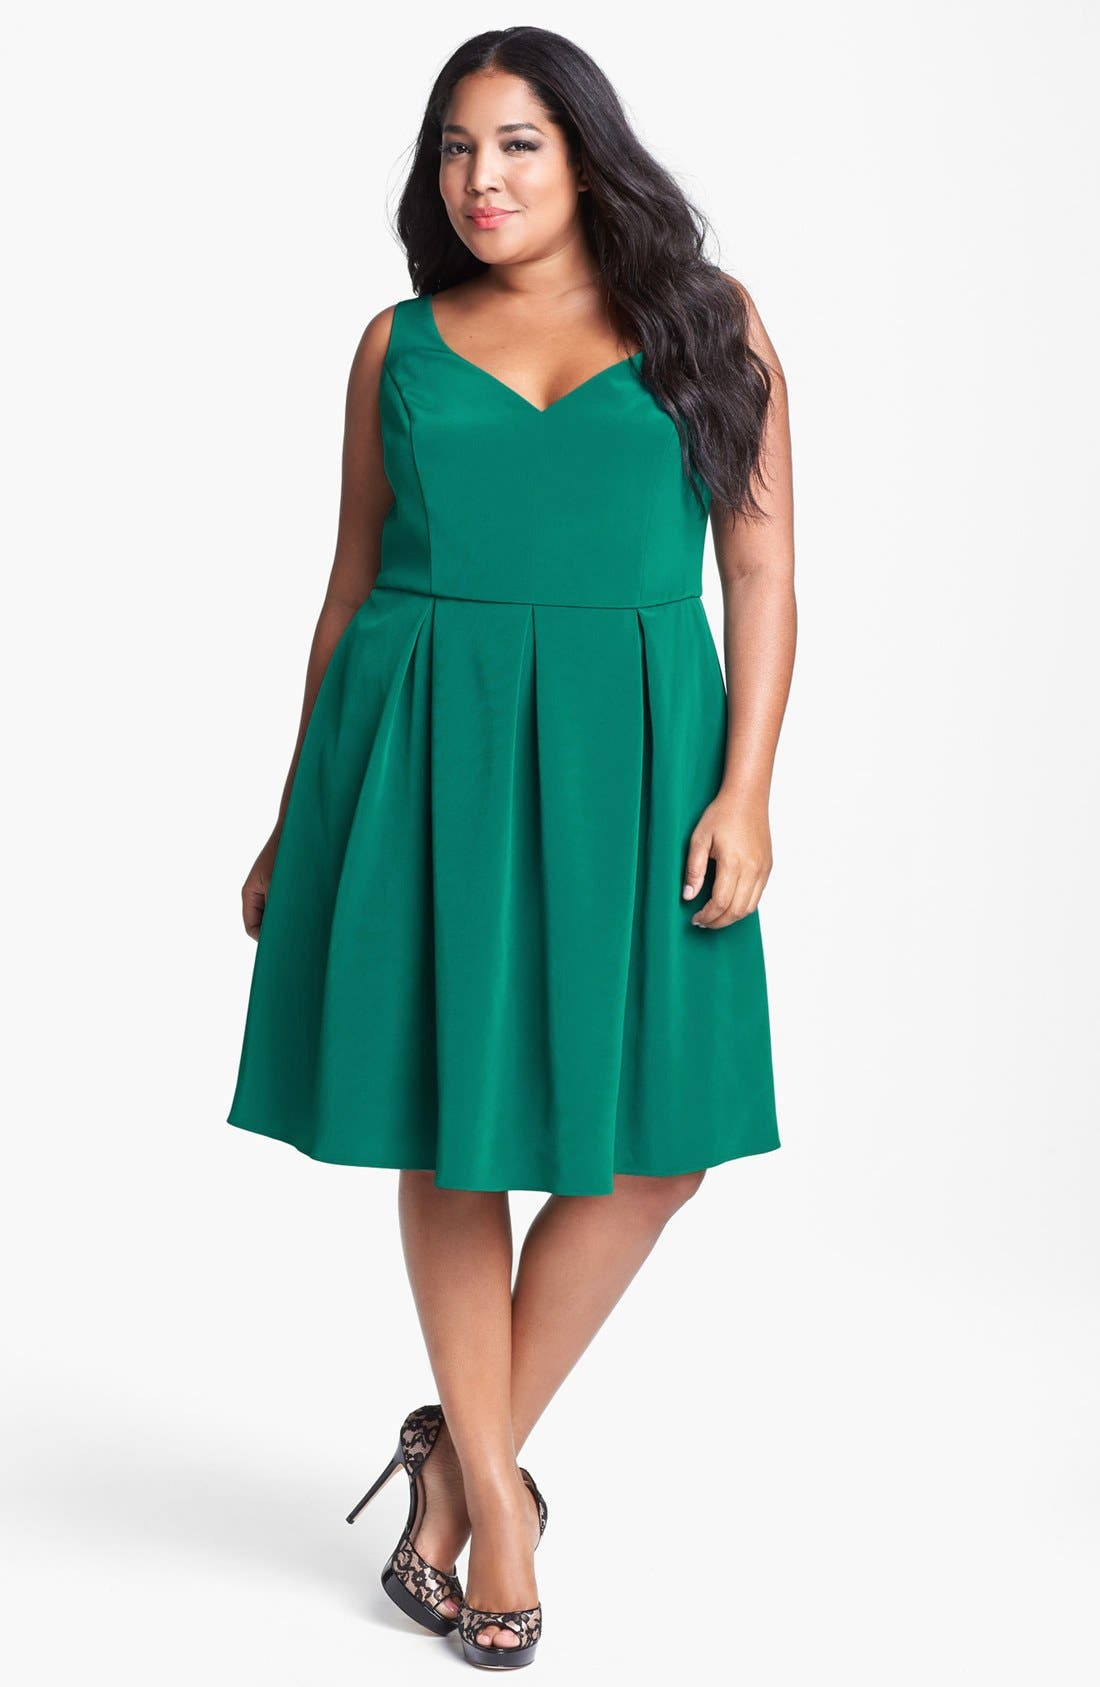 Main Image - ABS Luxury Collection Fit & Flare Dress (Plus Size)